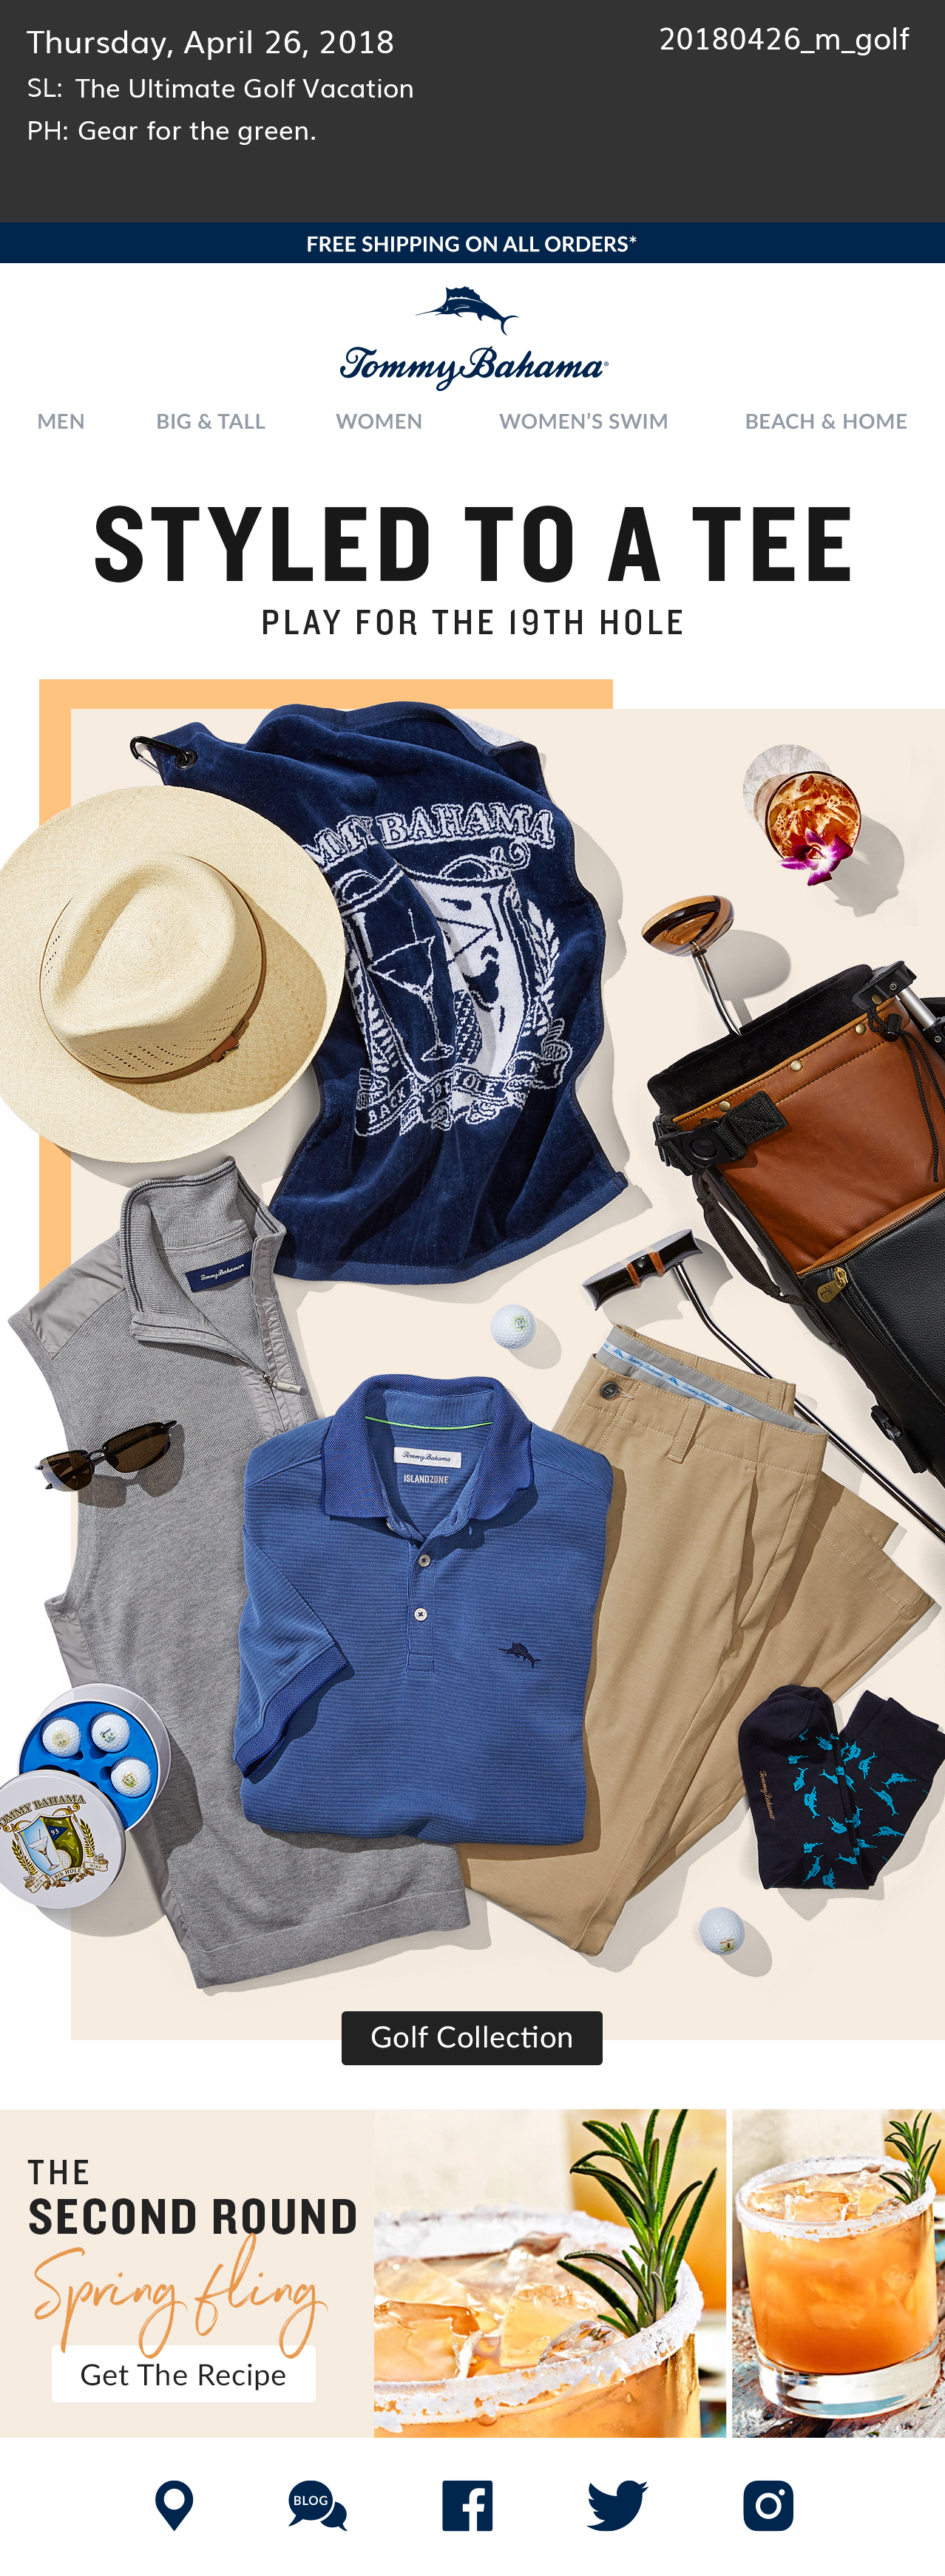 Tommy Bahama_Mens Email_Golf Collection.jpg